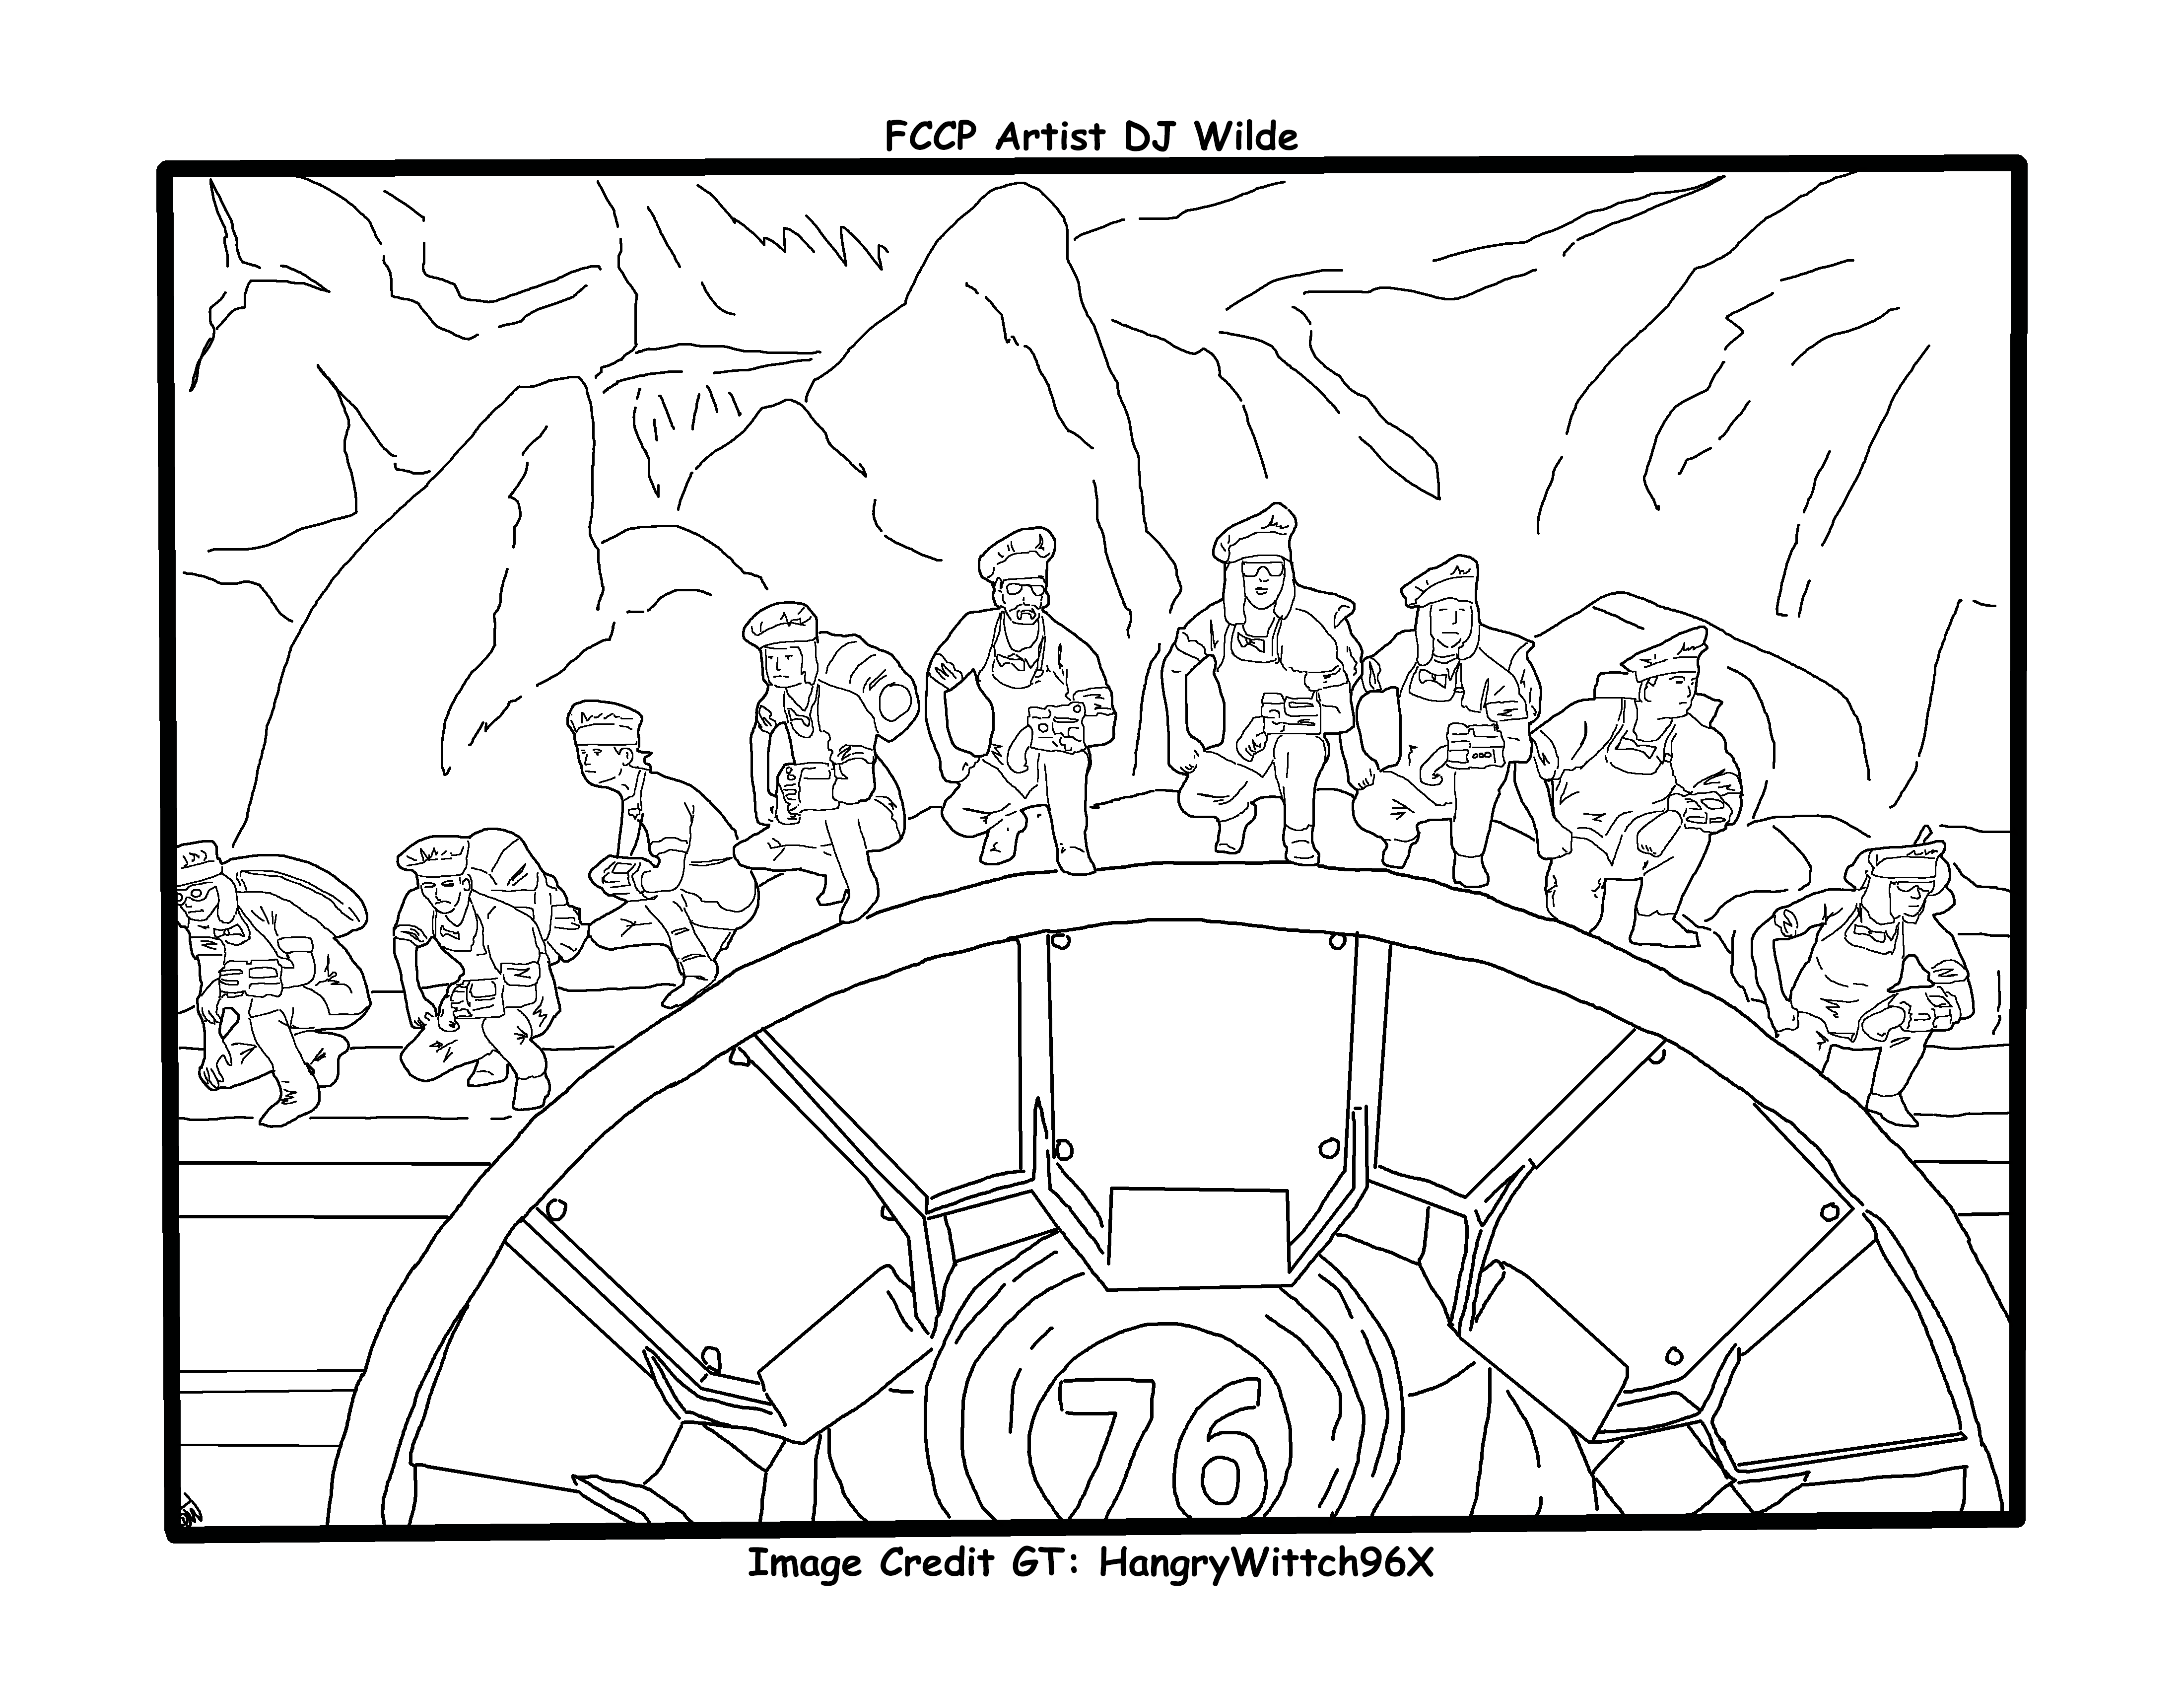 Fallout 76 Lot Of Chefs Coloring Page Coloring Pages Color Symbols [ 3400 x 4400 Pixel ]